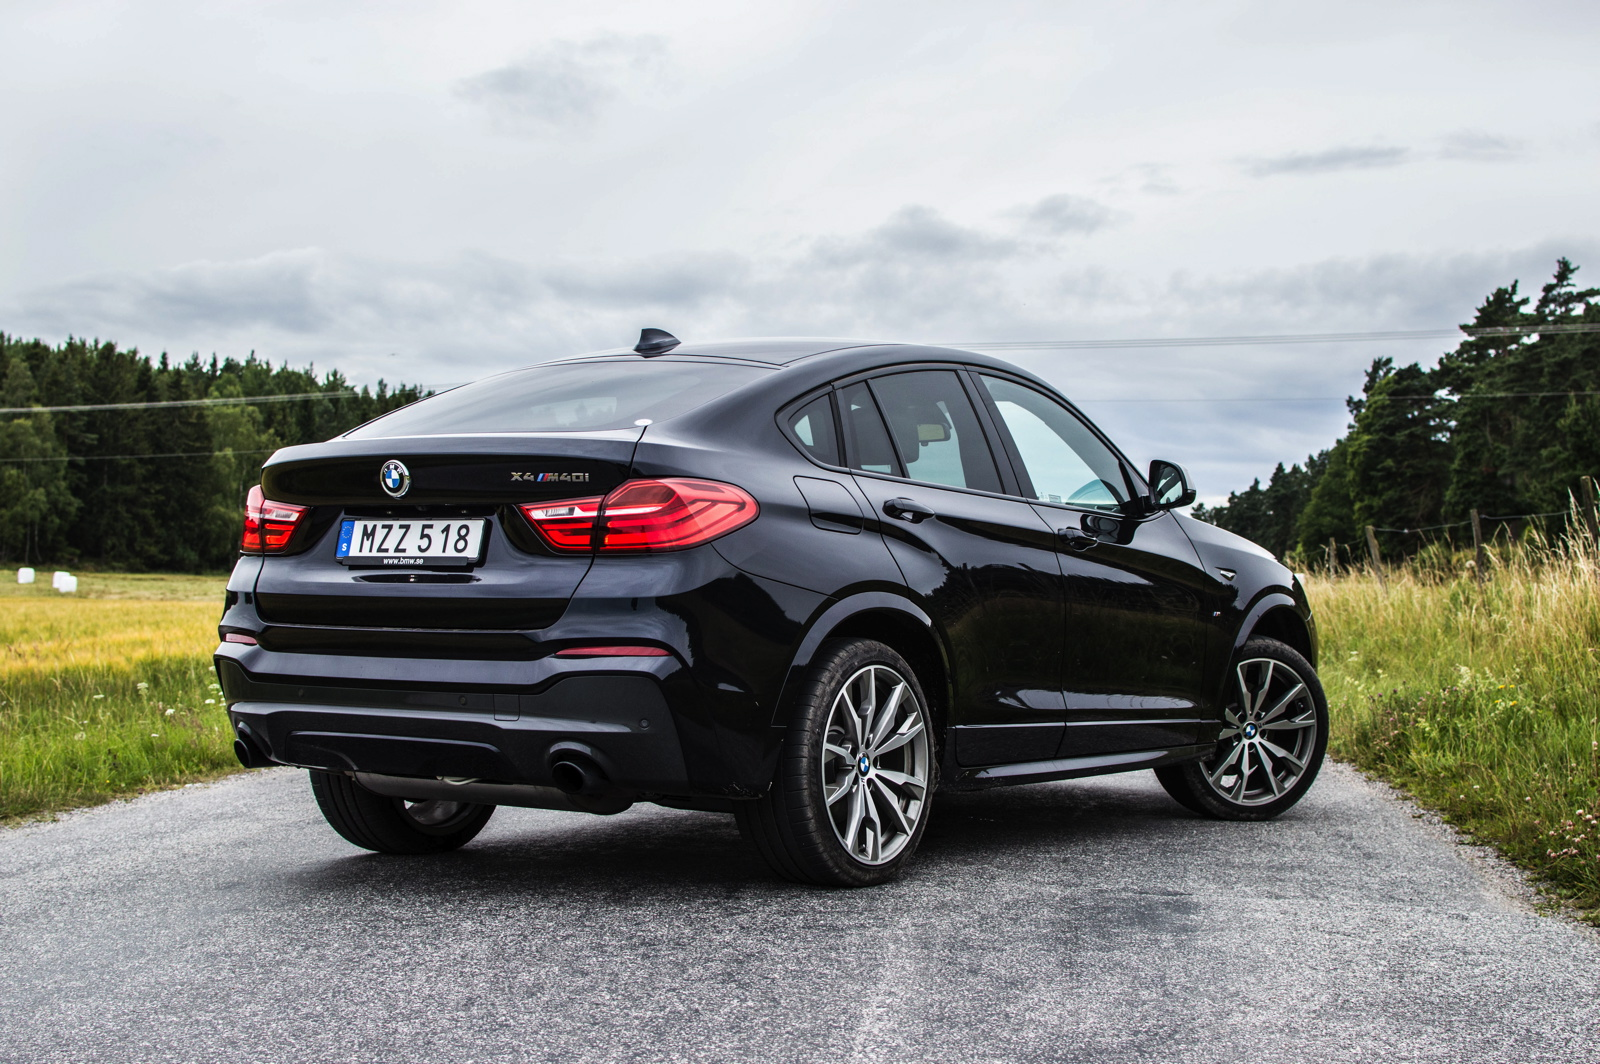 Something BMW Has Promised To Some Extent With The X4 Regard Coupe Design Is That Its Supposedly Should Be A Car Which Distinguishes Itself